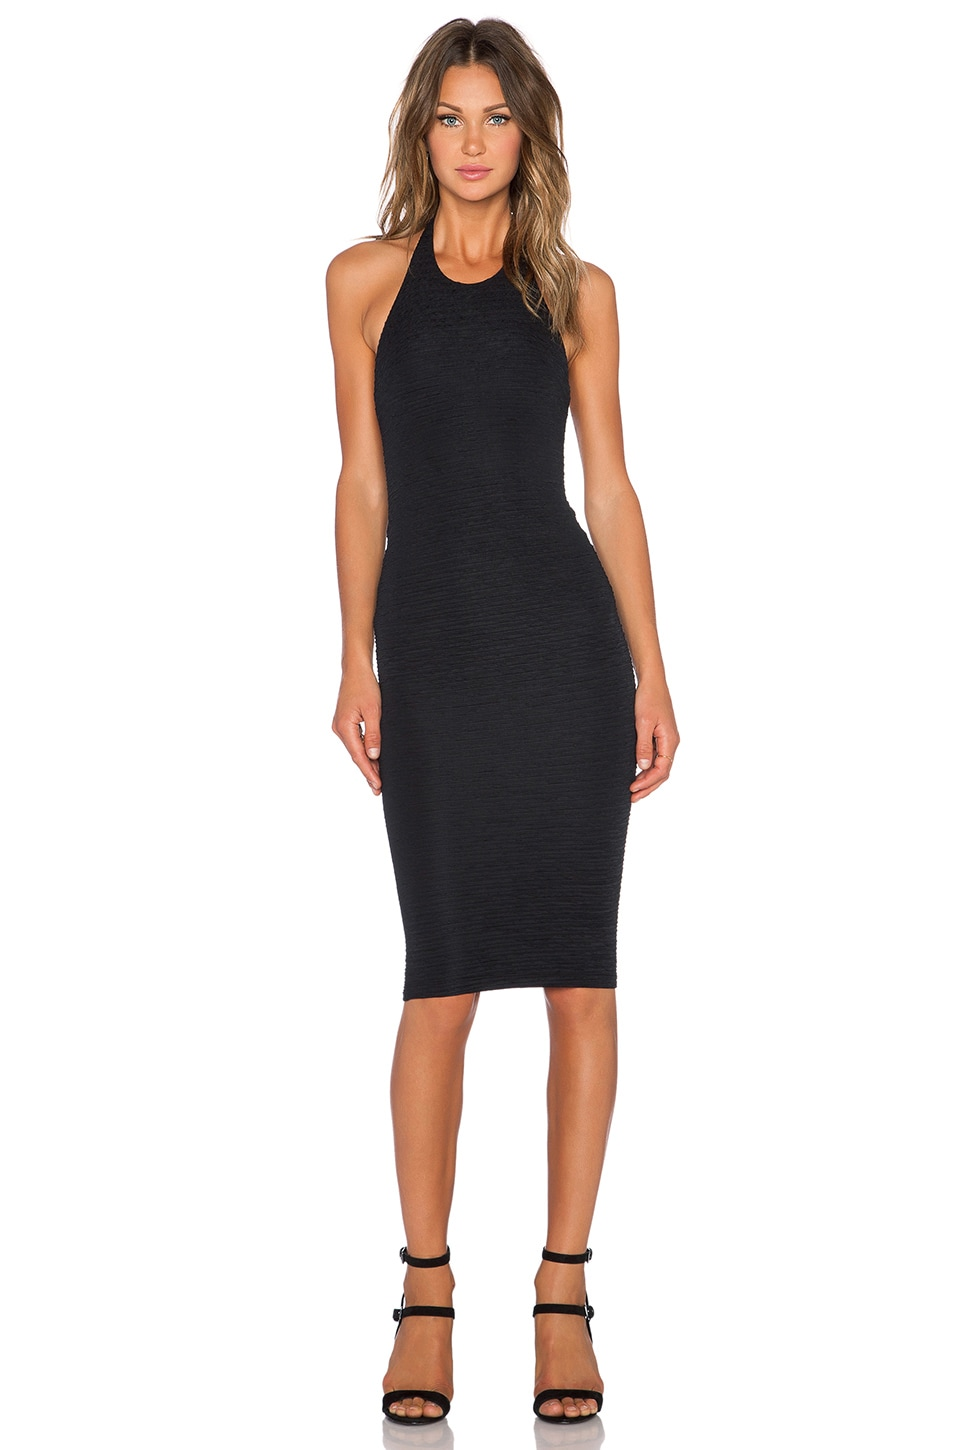 Nookie Casablaca Backless Dress in Black